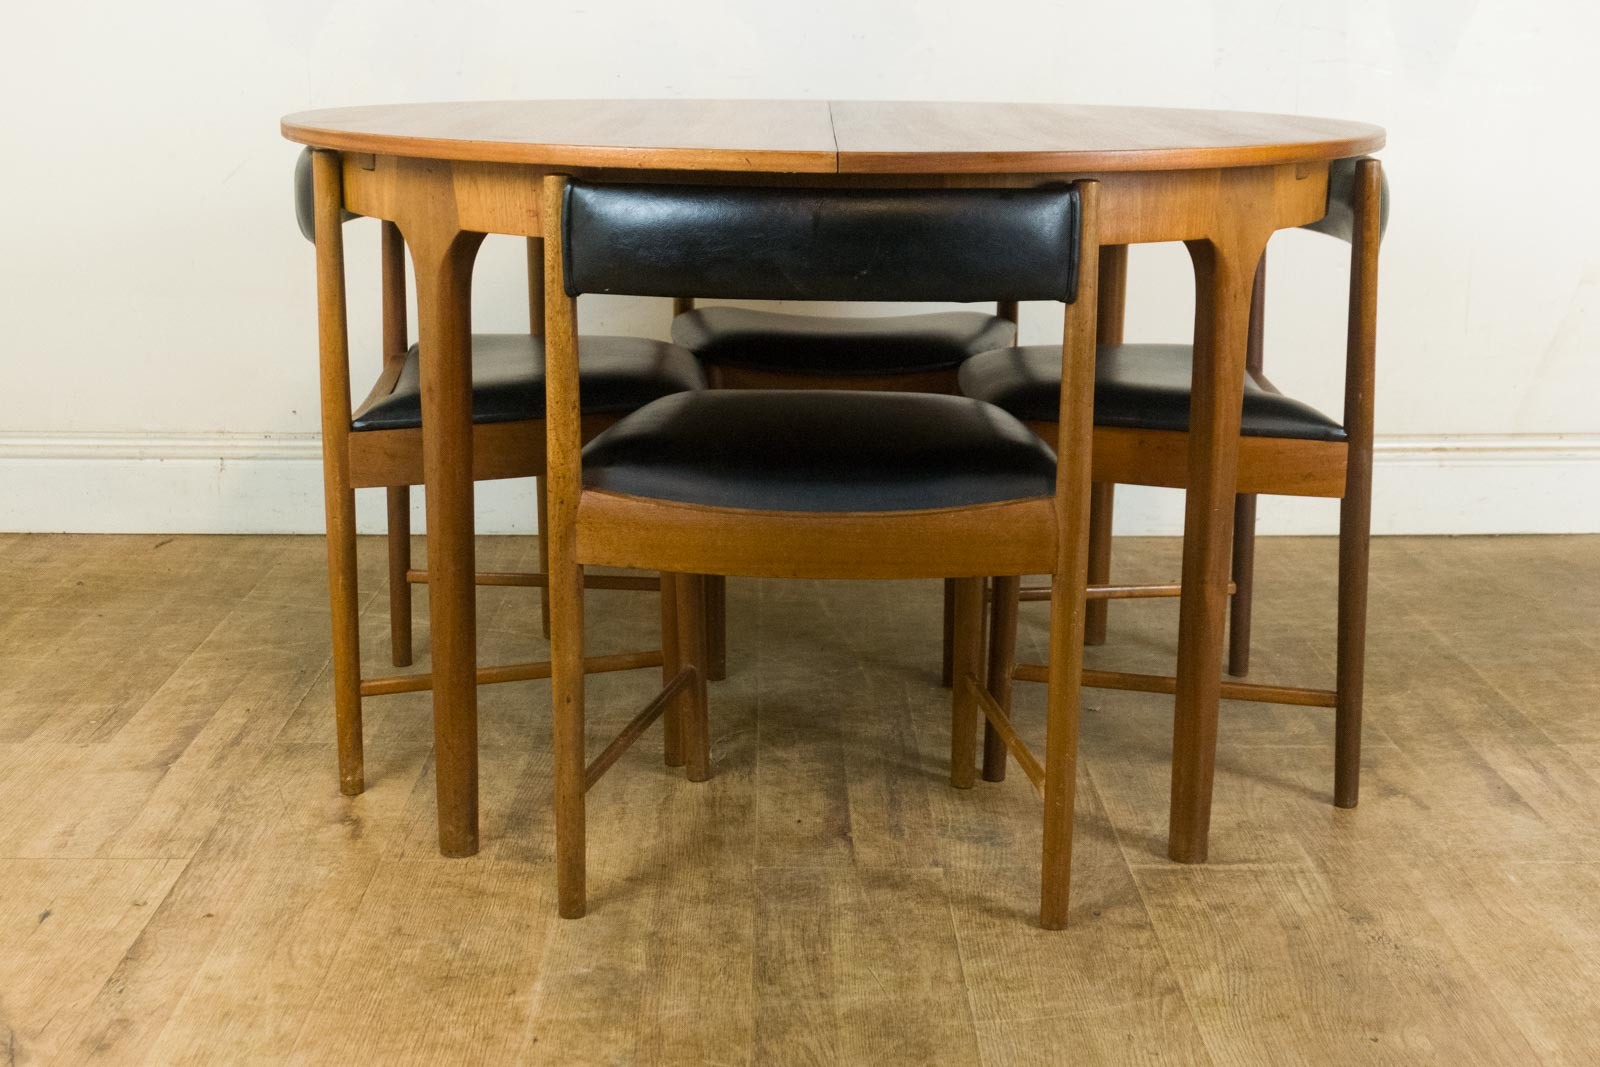 Vintage Retro Teak Extending Dining Table And 4 Chairs By McIntosh EBay